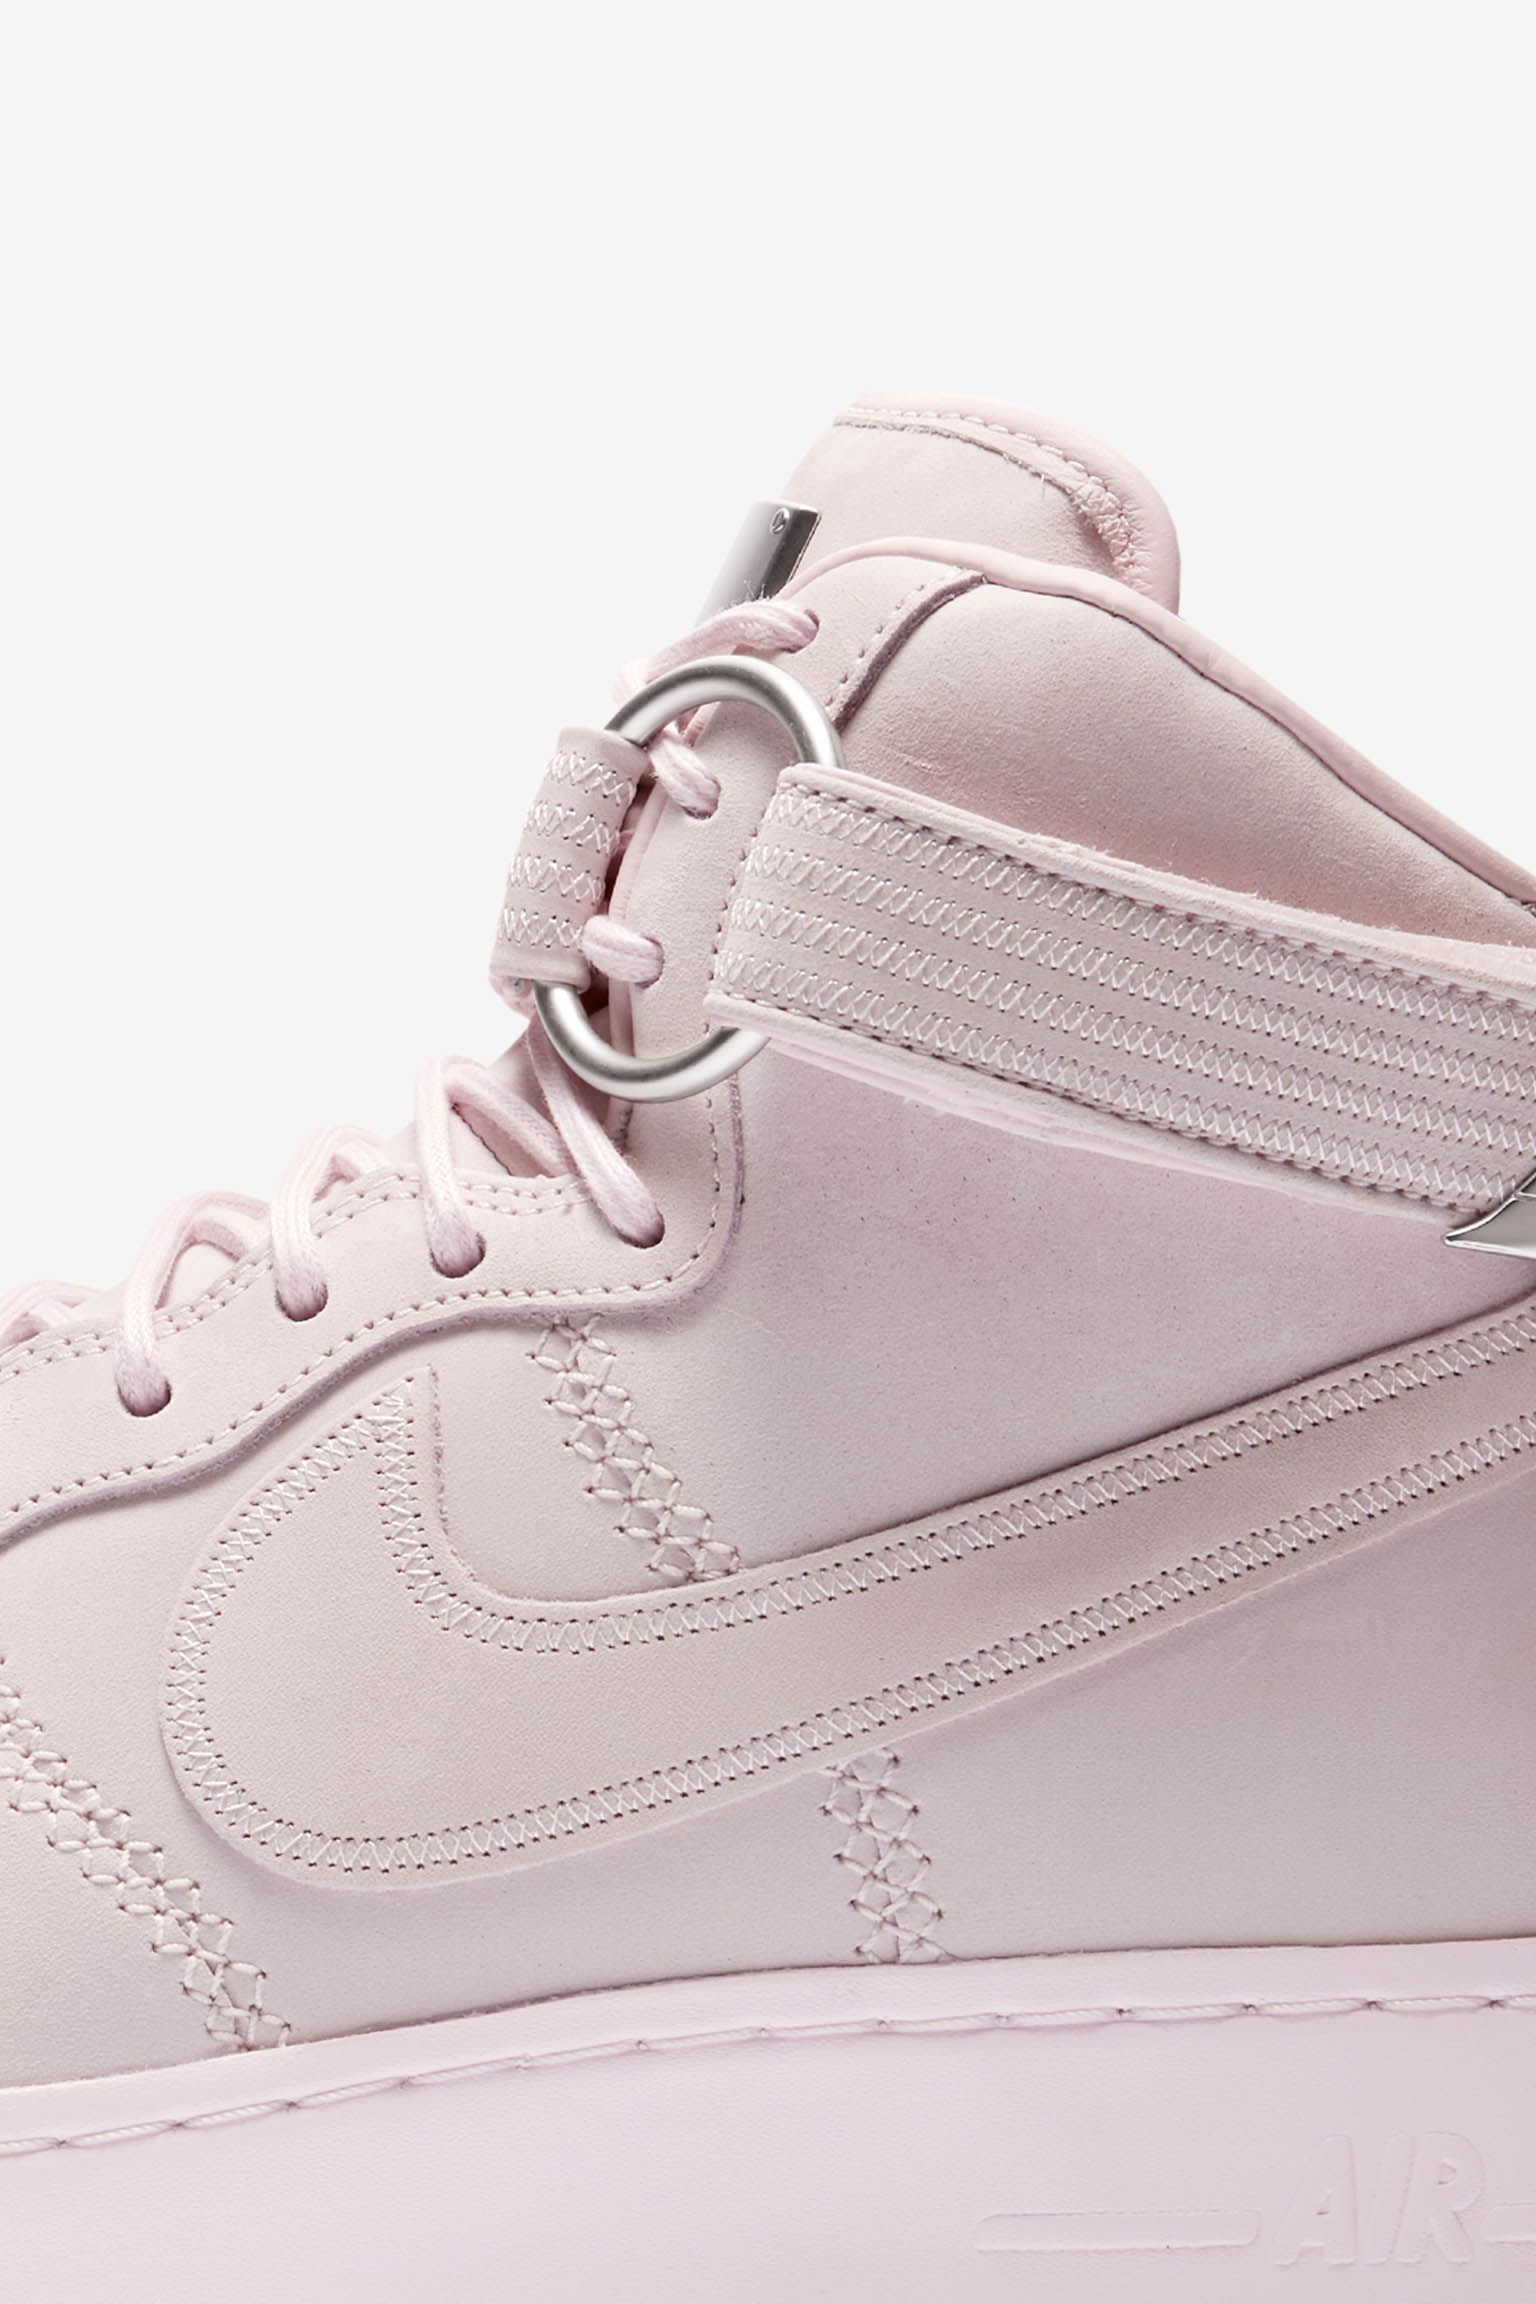 official photos c4936 a53bd ... uk nike air force 1 high sport lux pearl pink release 5f59b 15cd0